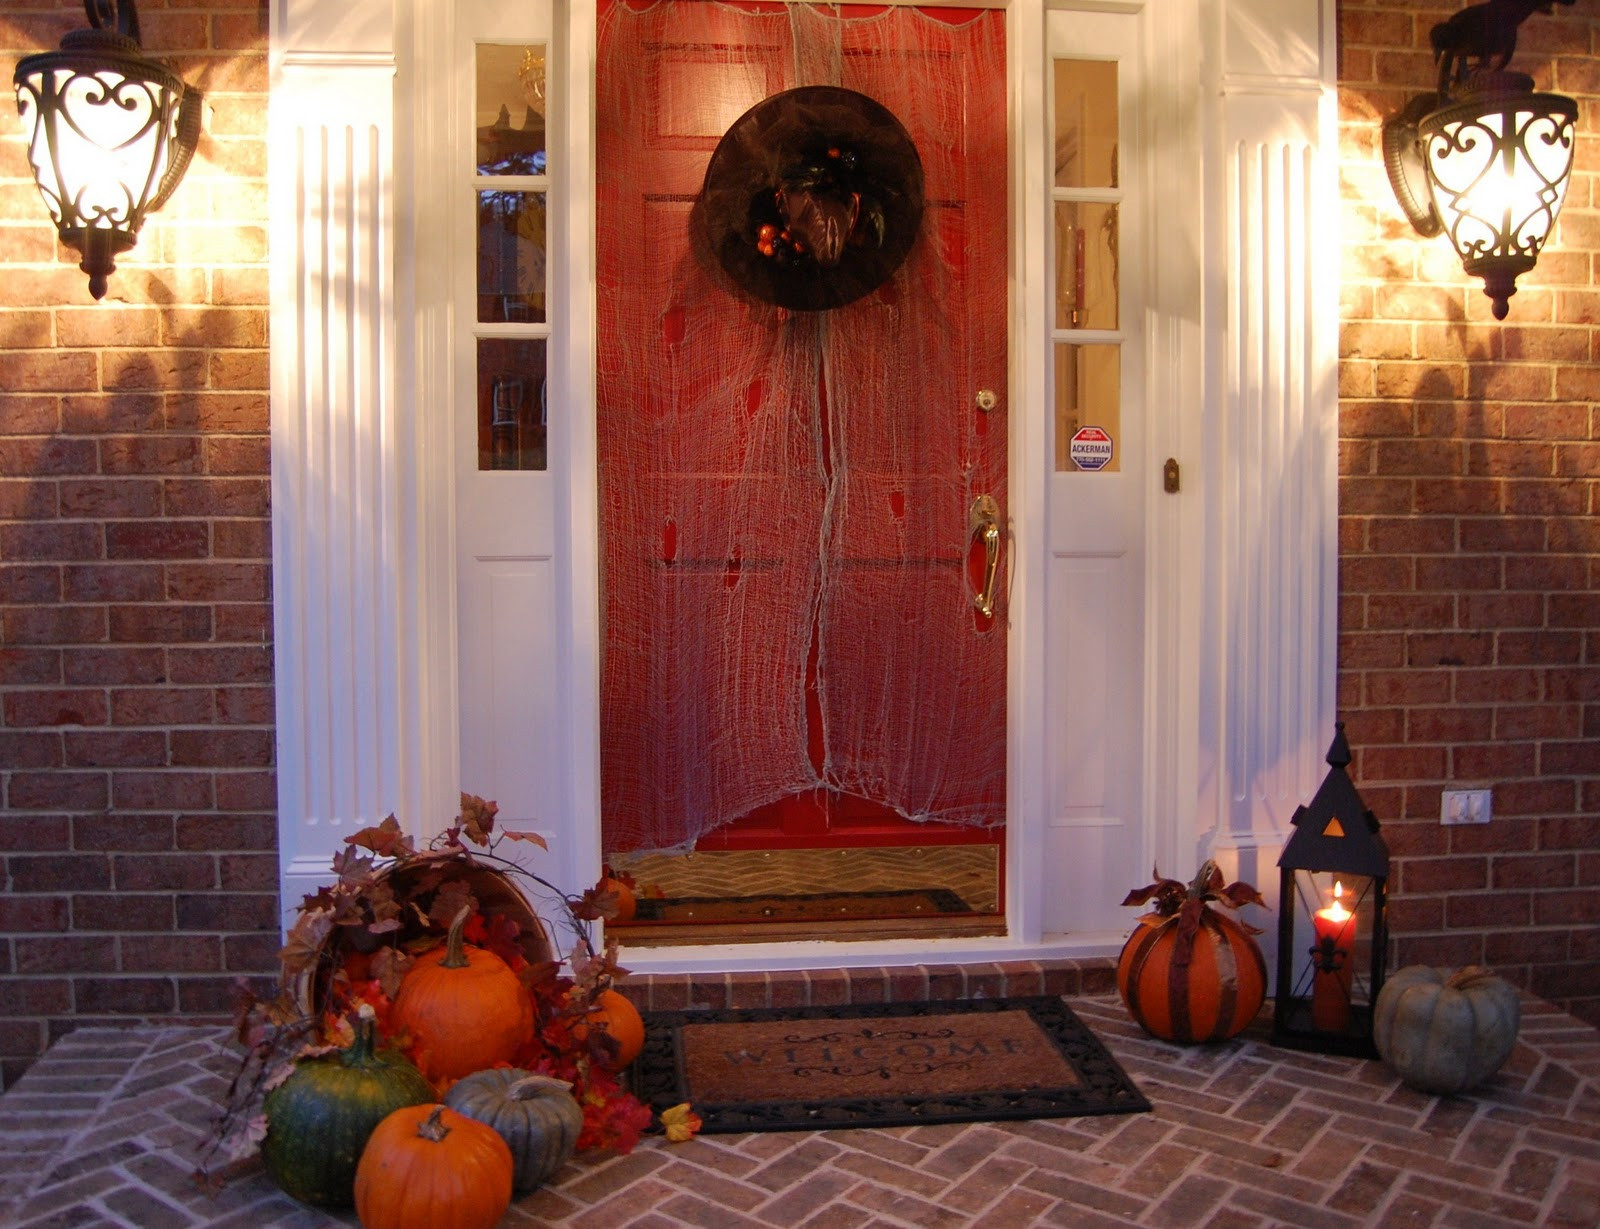 Porch Decorating For Halloween  Front Porch Decorated for Halloween